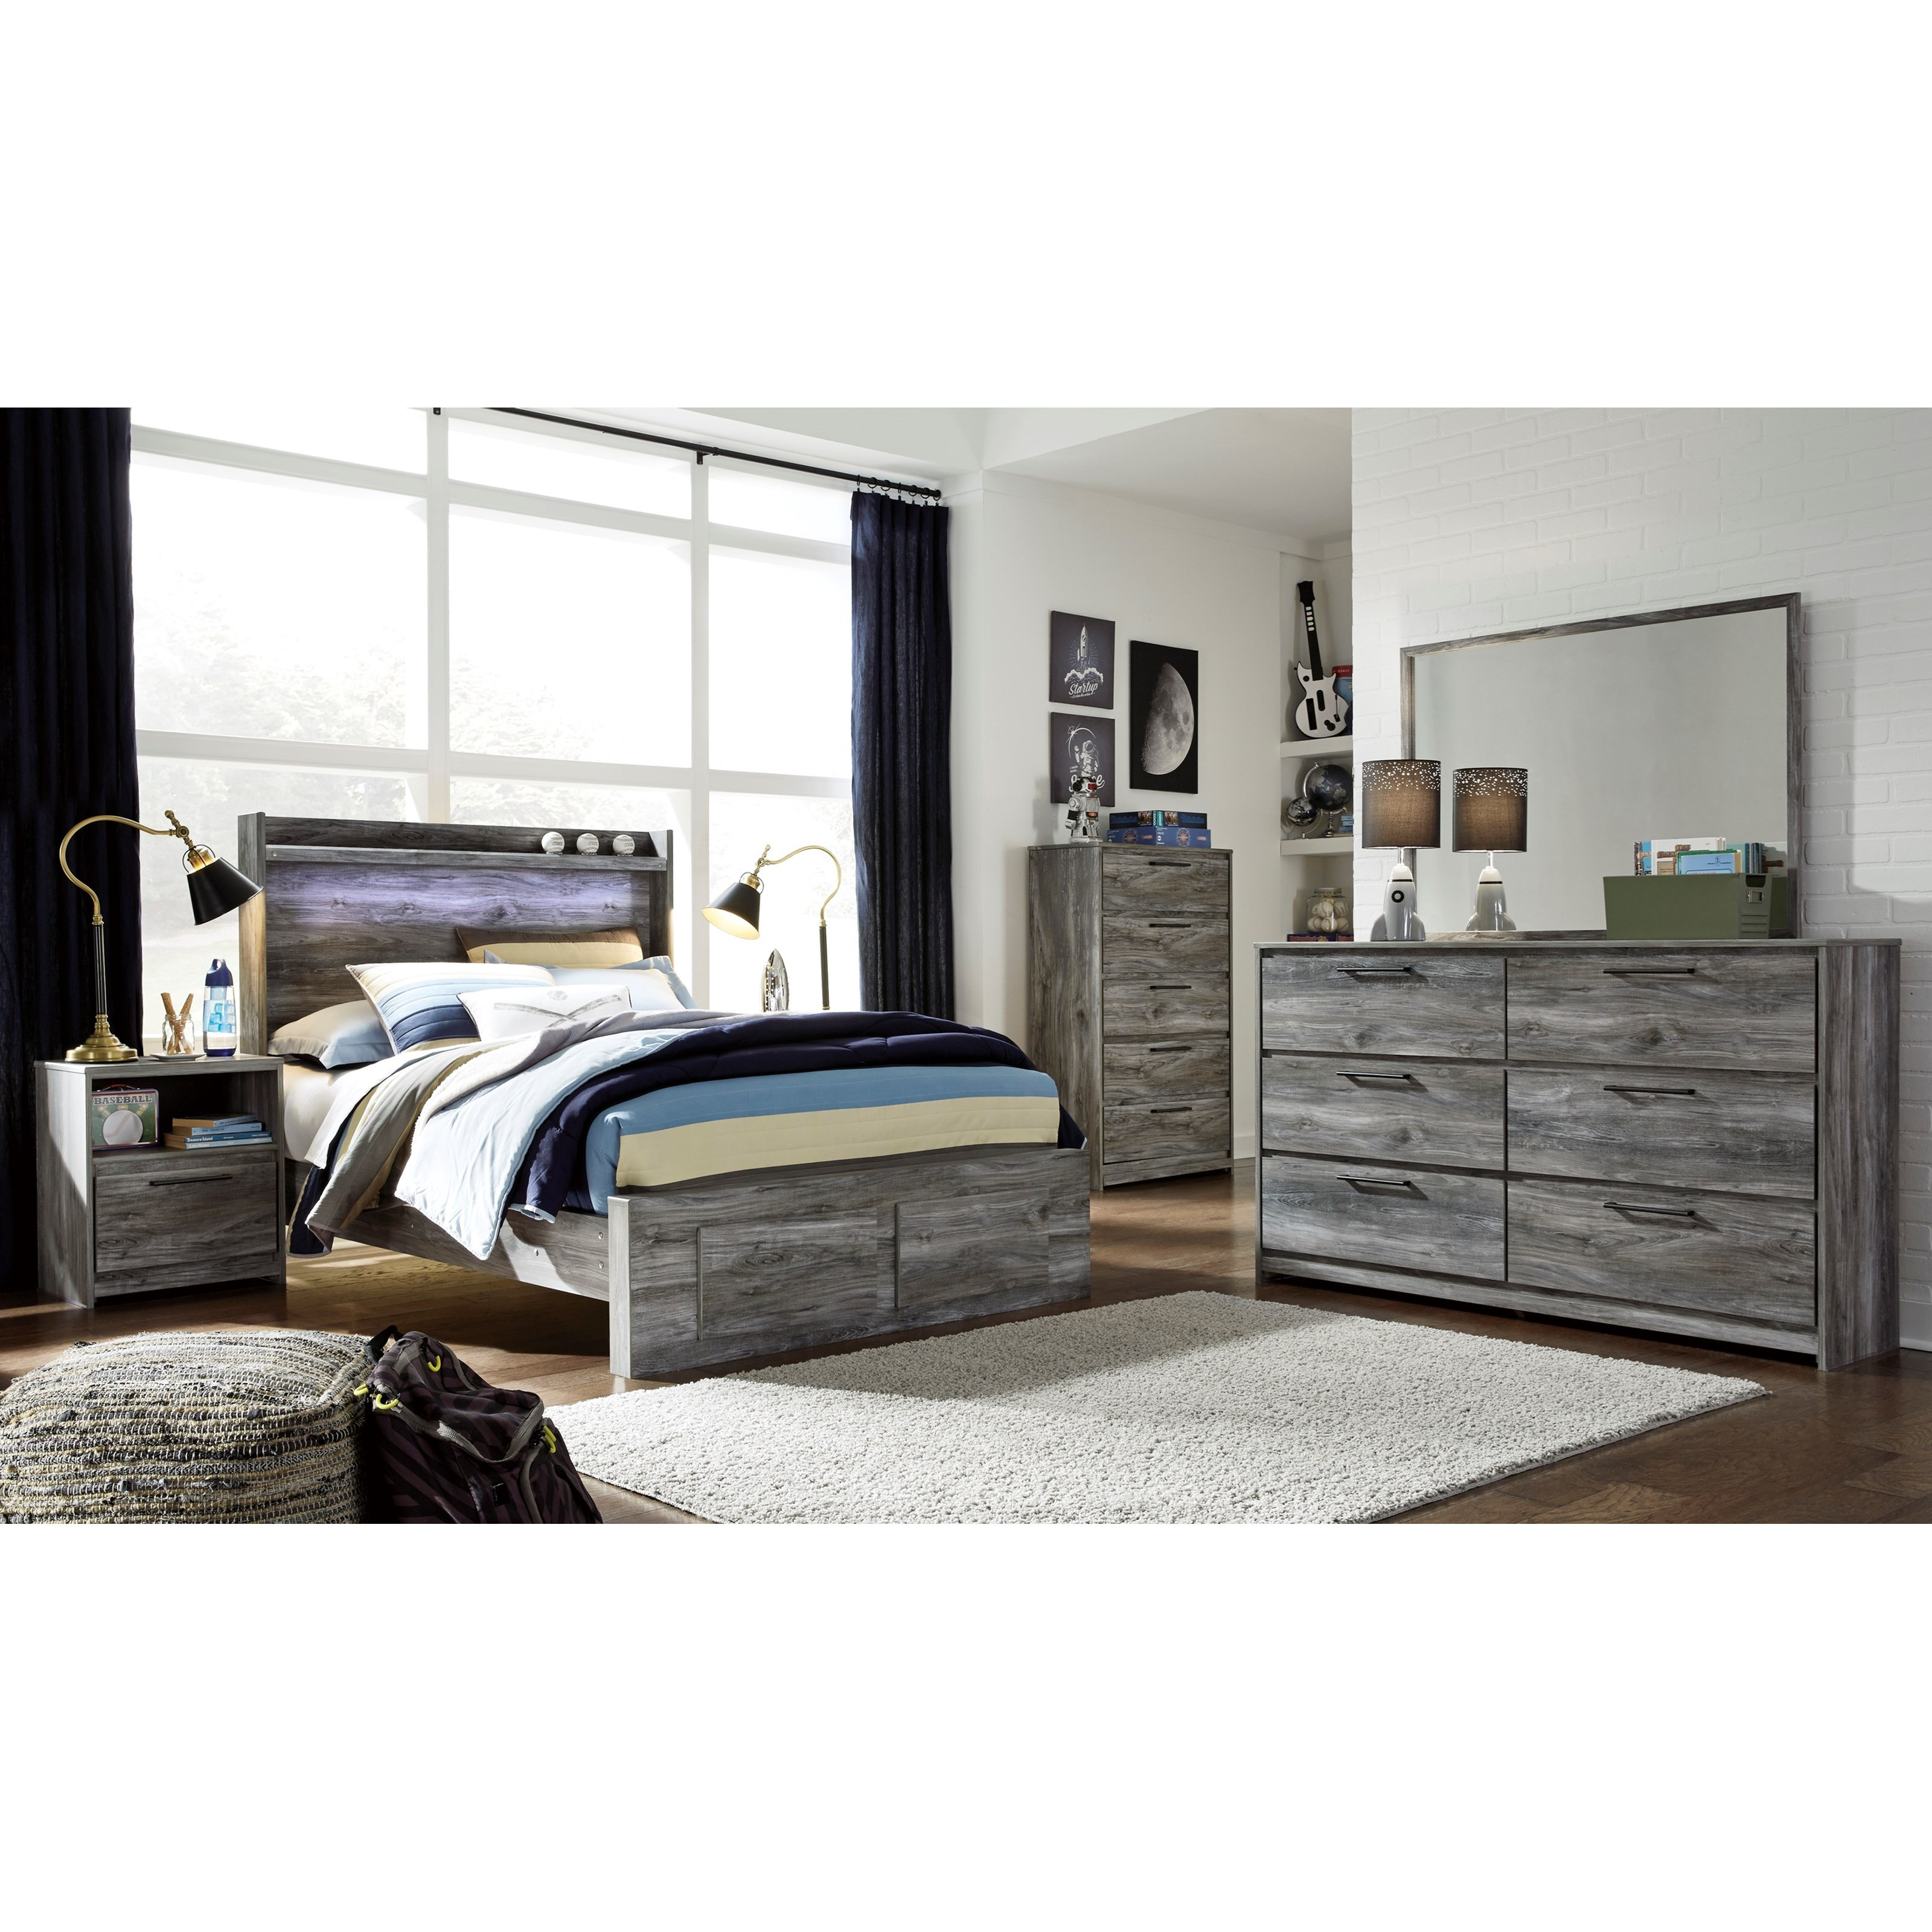 Baystorm Full Bedroom Group by Signature Design by Ashley at Sparks HomeStore